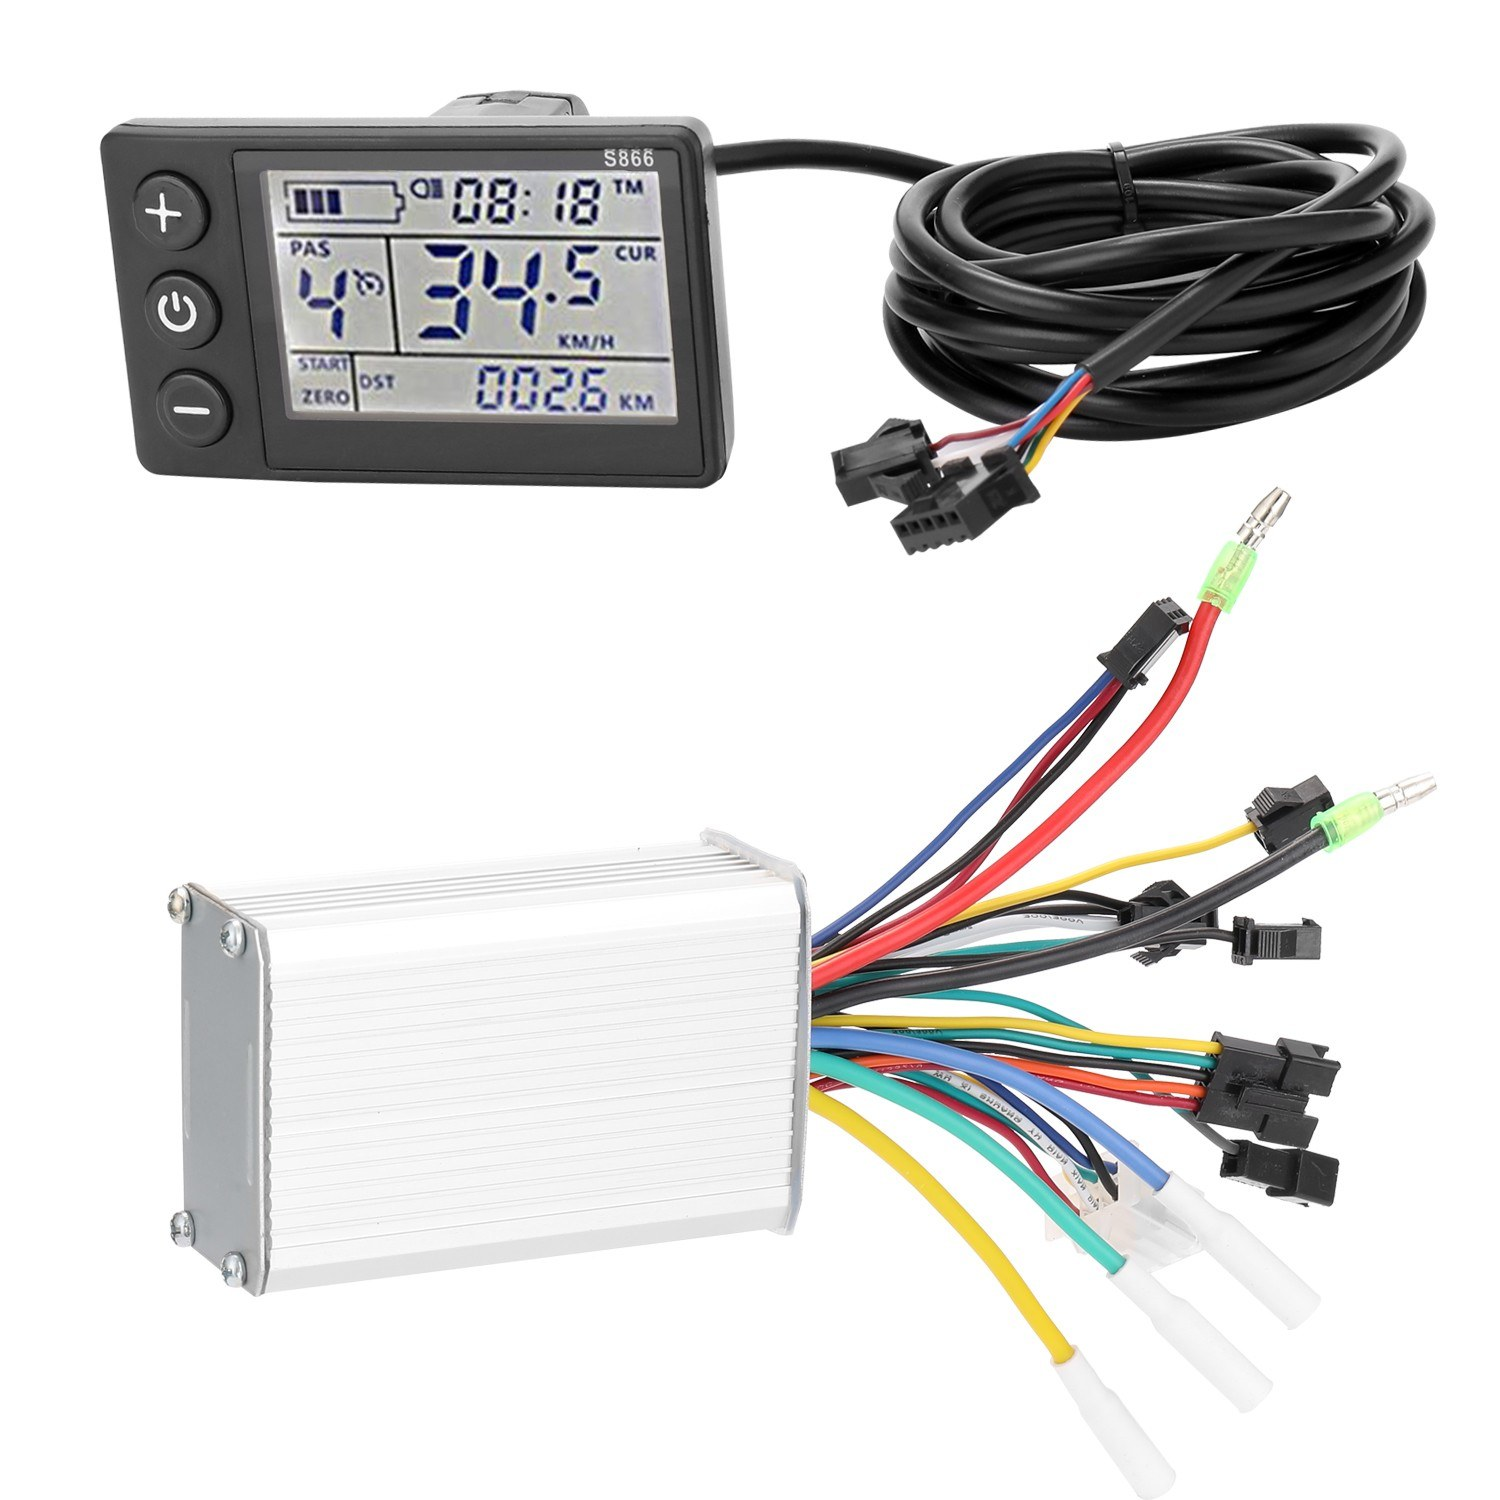 Electric Bike Controller 24V-48V/36V-60V 350W Brushless E-bike Controller with LCD Display Bicycles Motor Scooter Controller S866